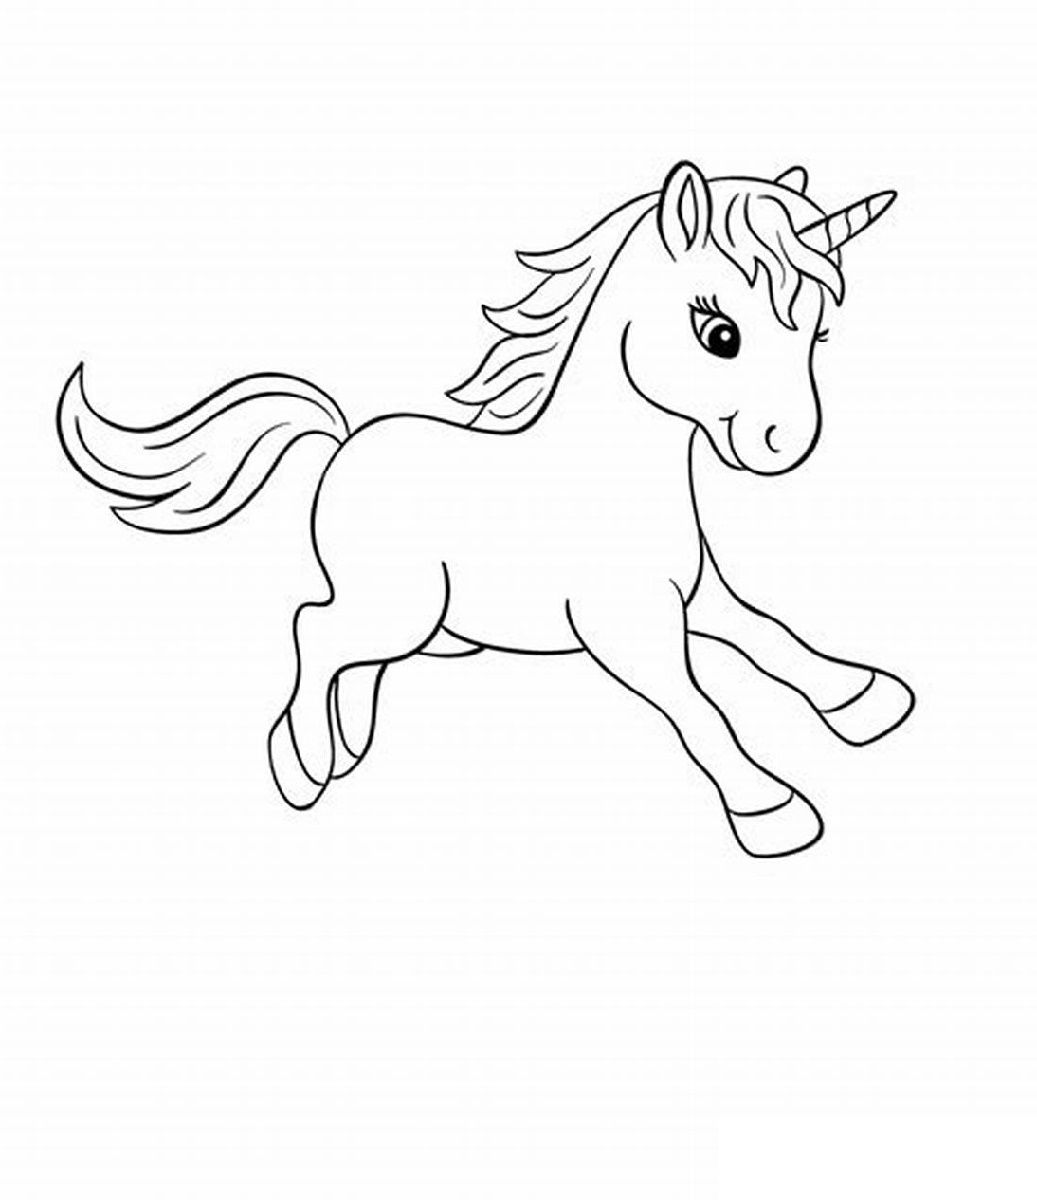 Printable Baby Unicorn Coloring Pages K5 Worksheets On Worksheets Ideas 6061